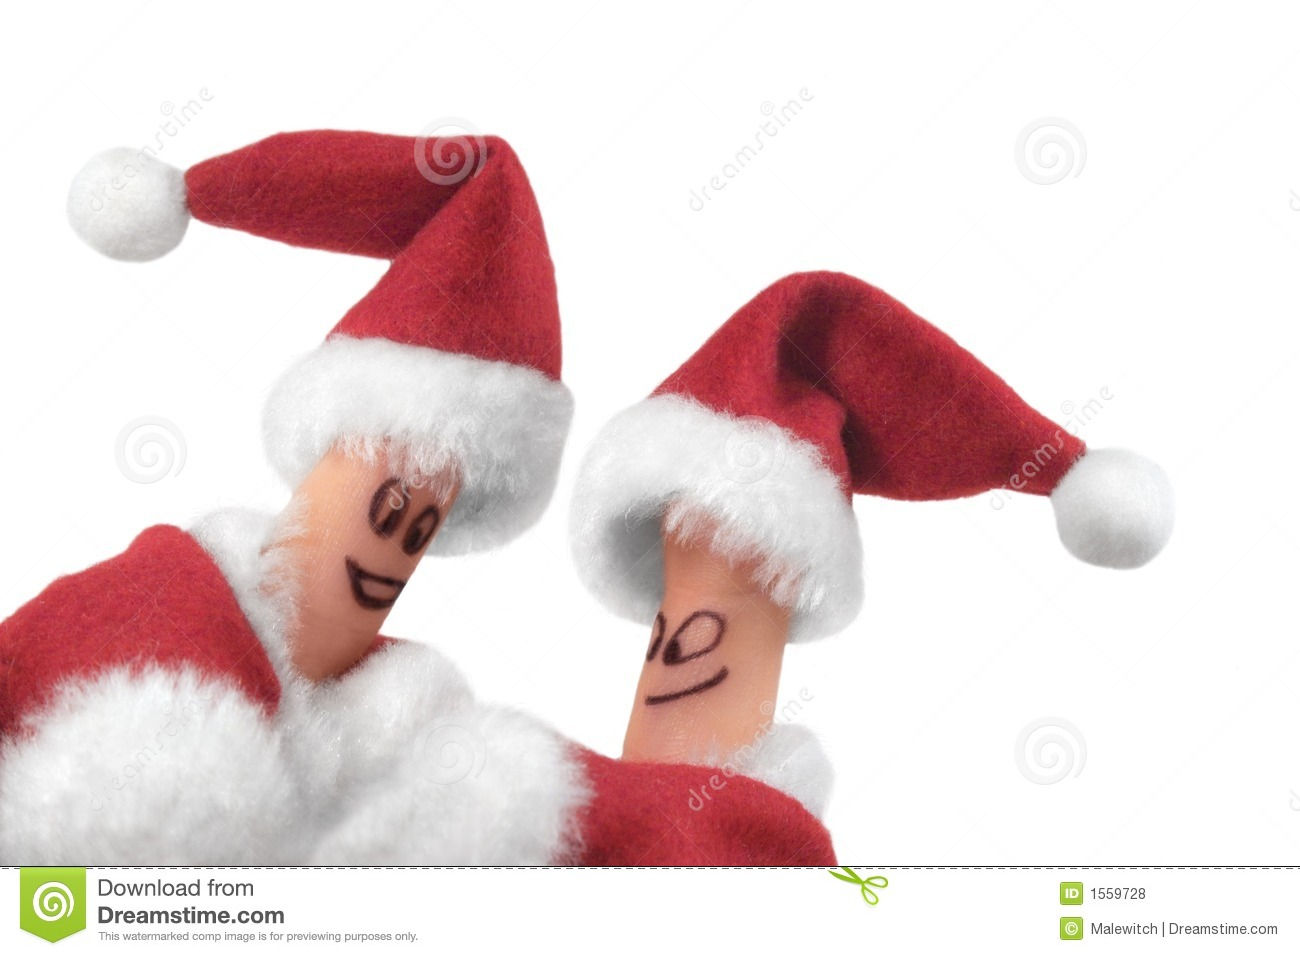 Christmas fingers show-3 stock photo. Image of greetings - 1559728